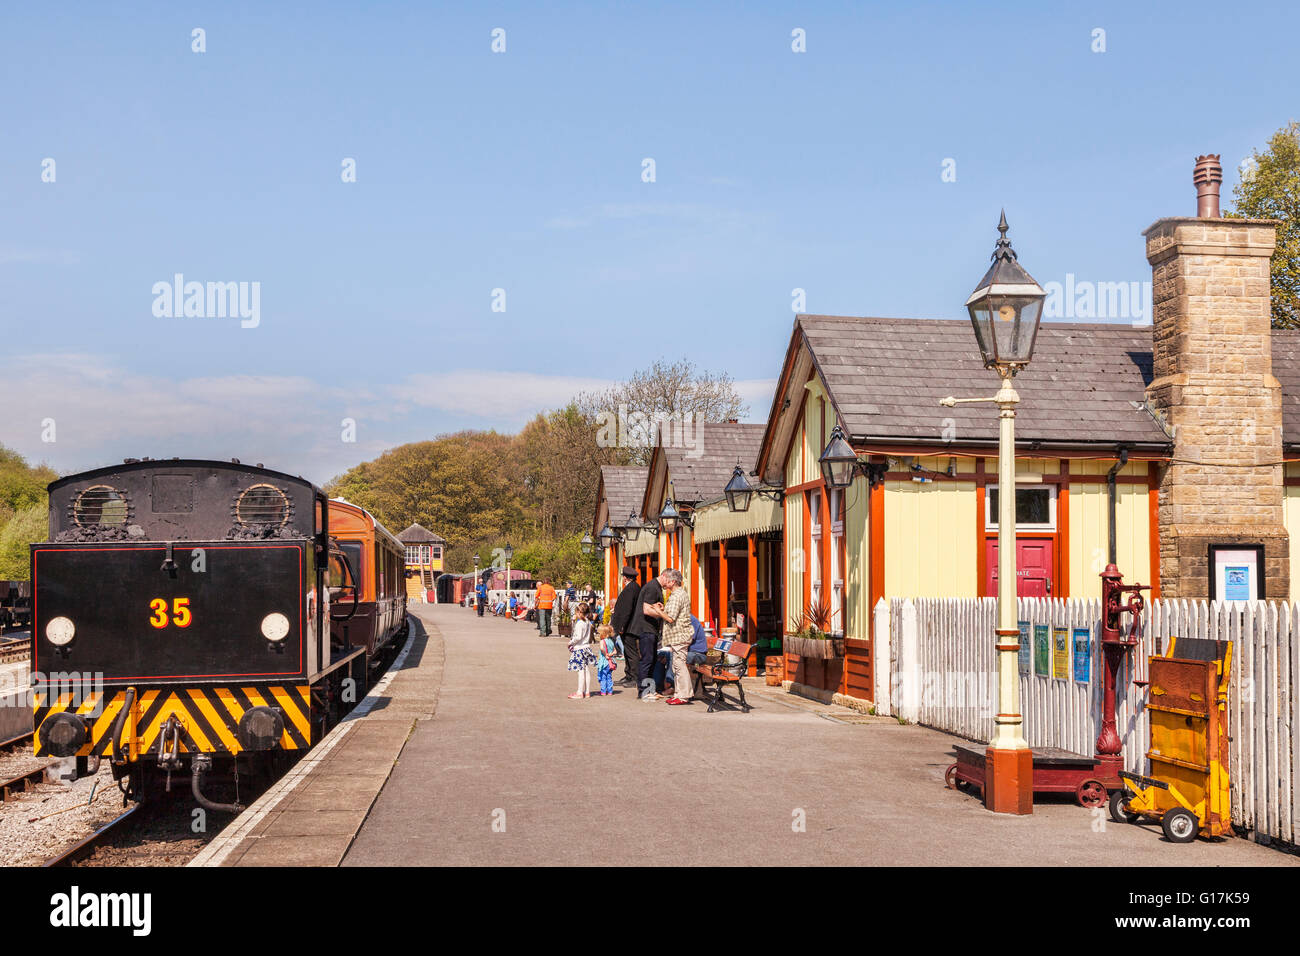 People waiting on the platform at Bolton Abbey Station as  0-6-0 Austerity Class Saddle Tank Engine arrives, showing - Stock Image